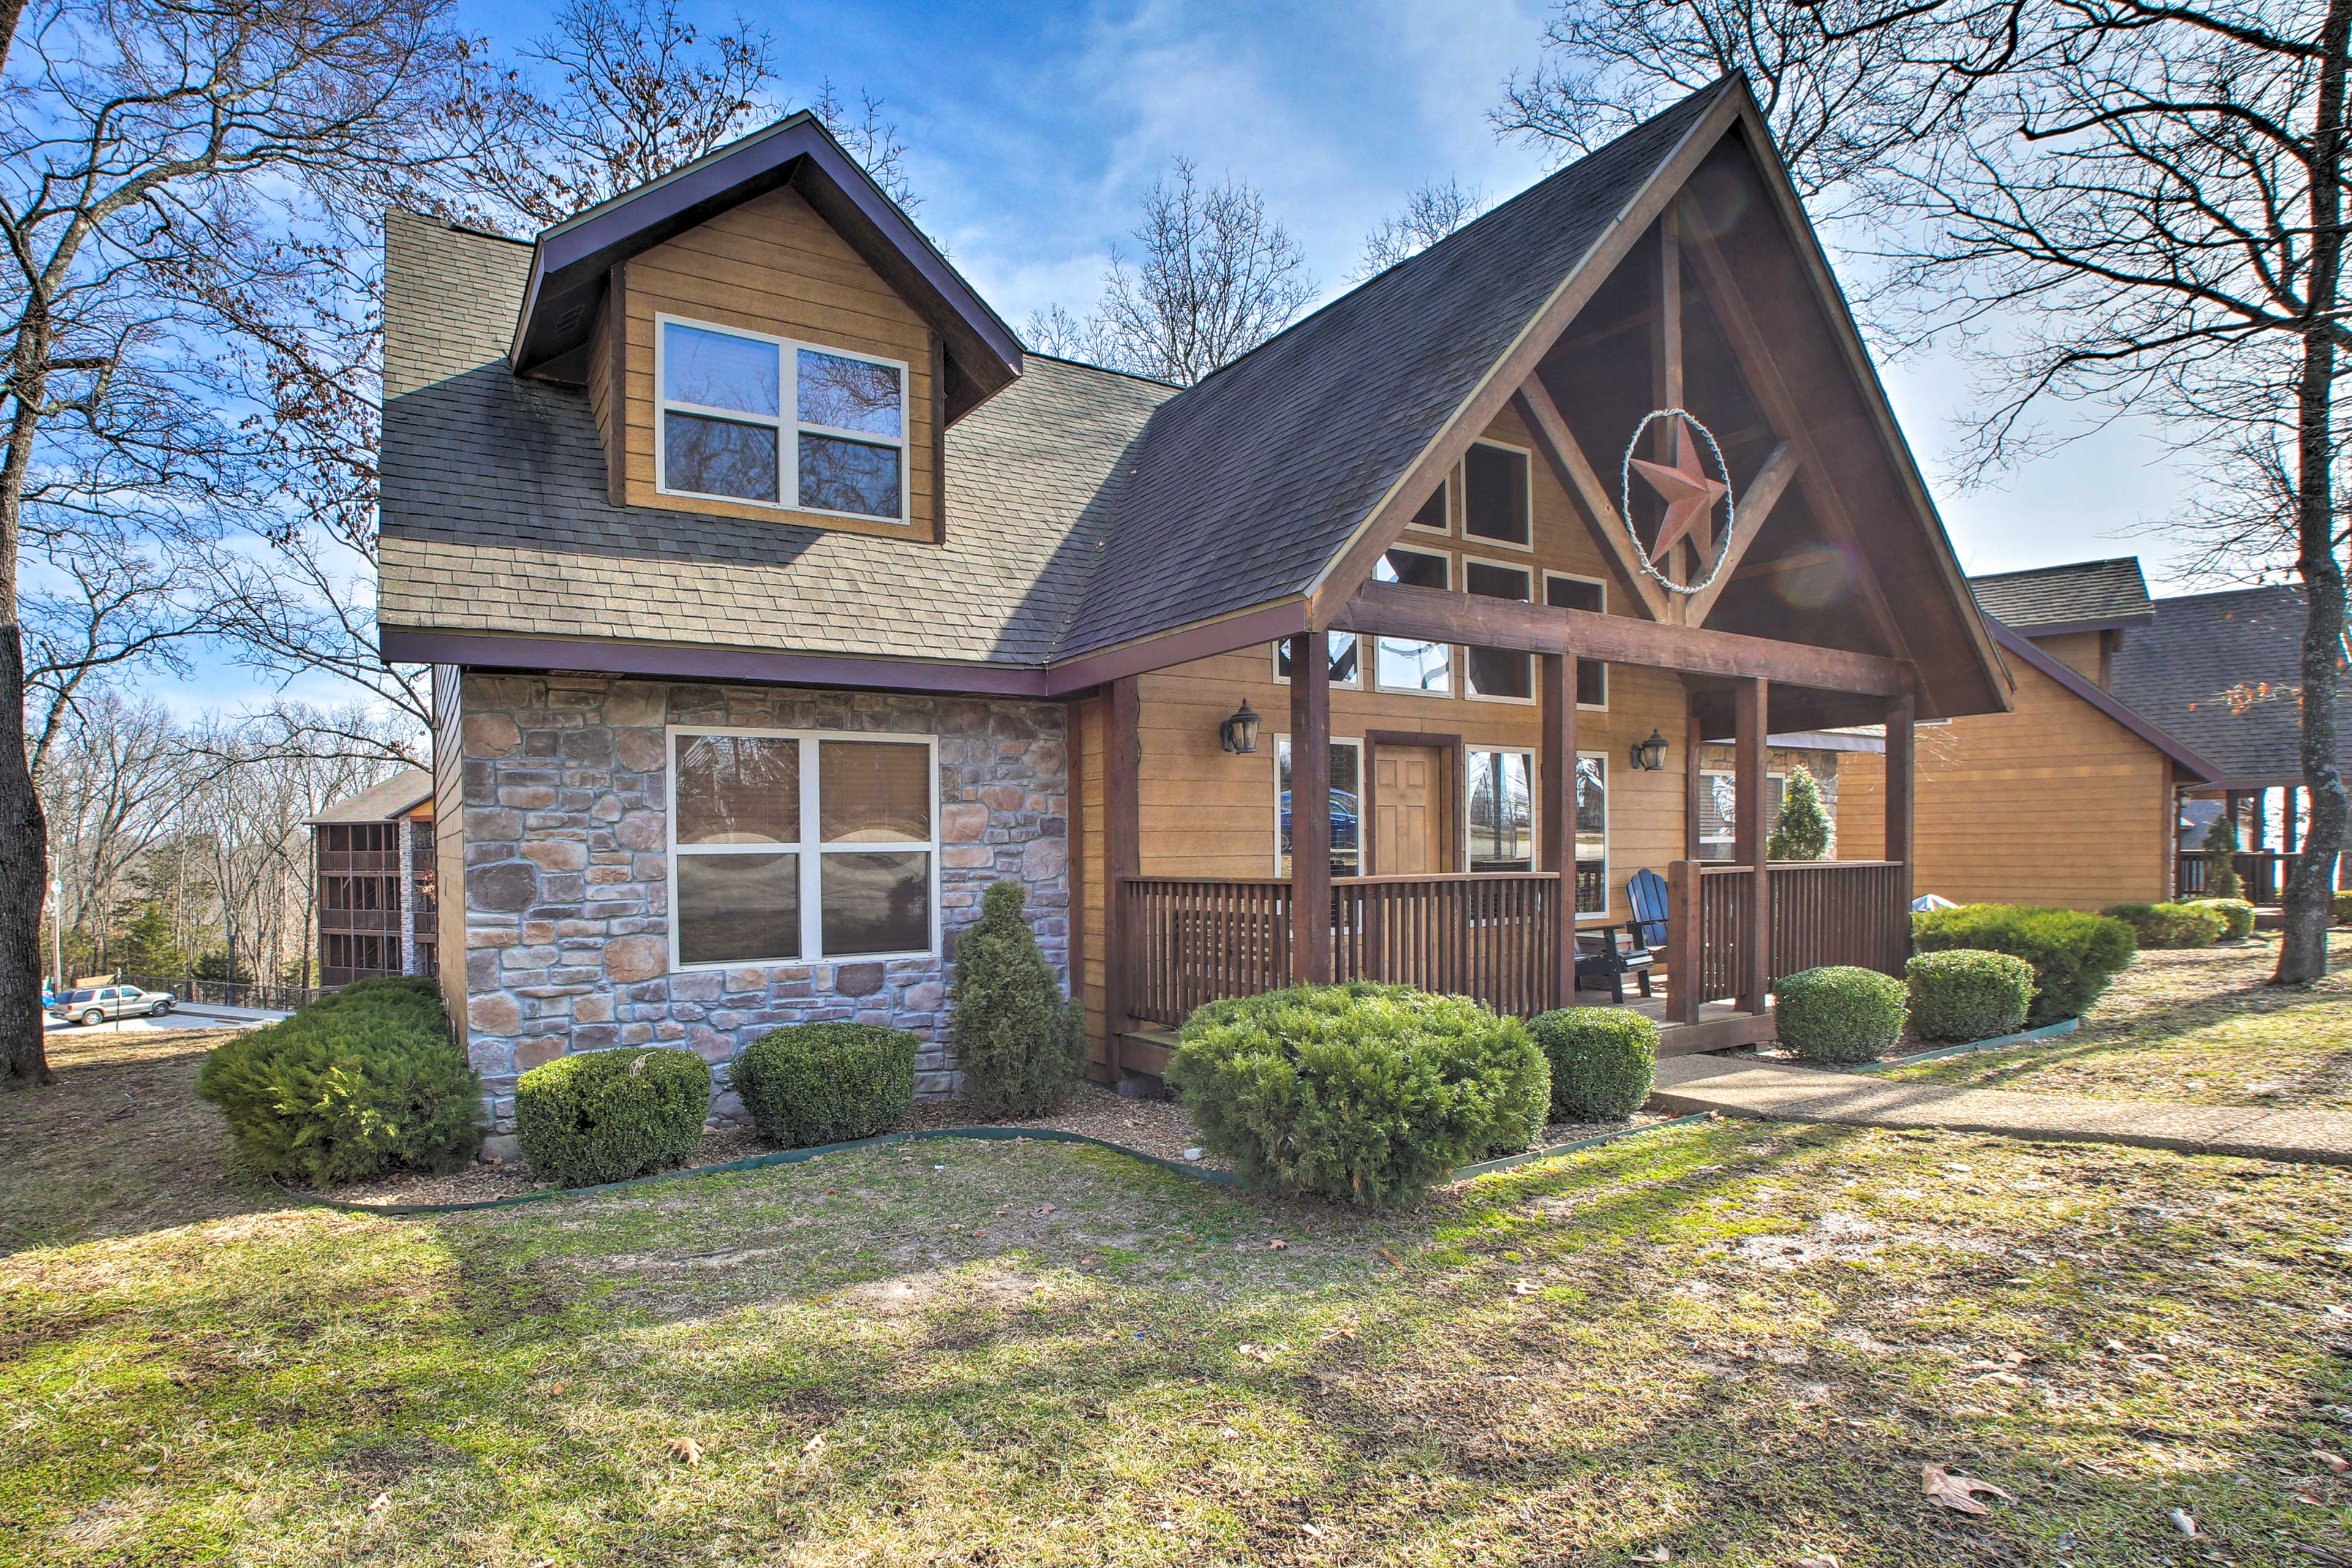 Embark on an epic group getaway to this 4-bedroom, 4-bath Branson cabin!